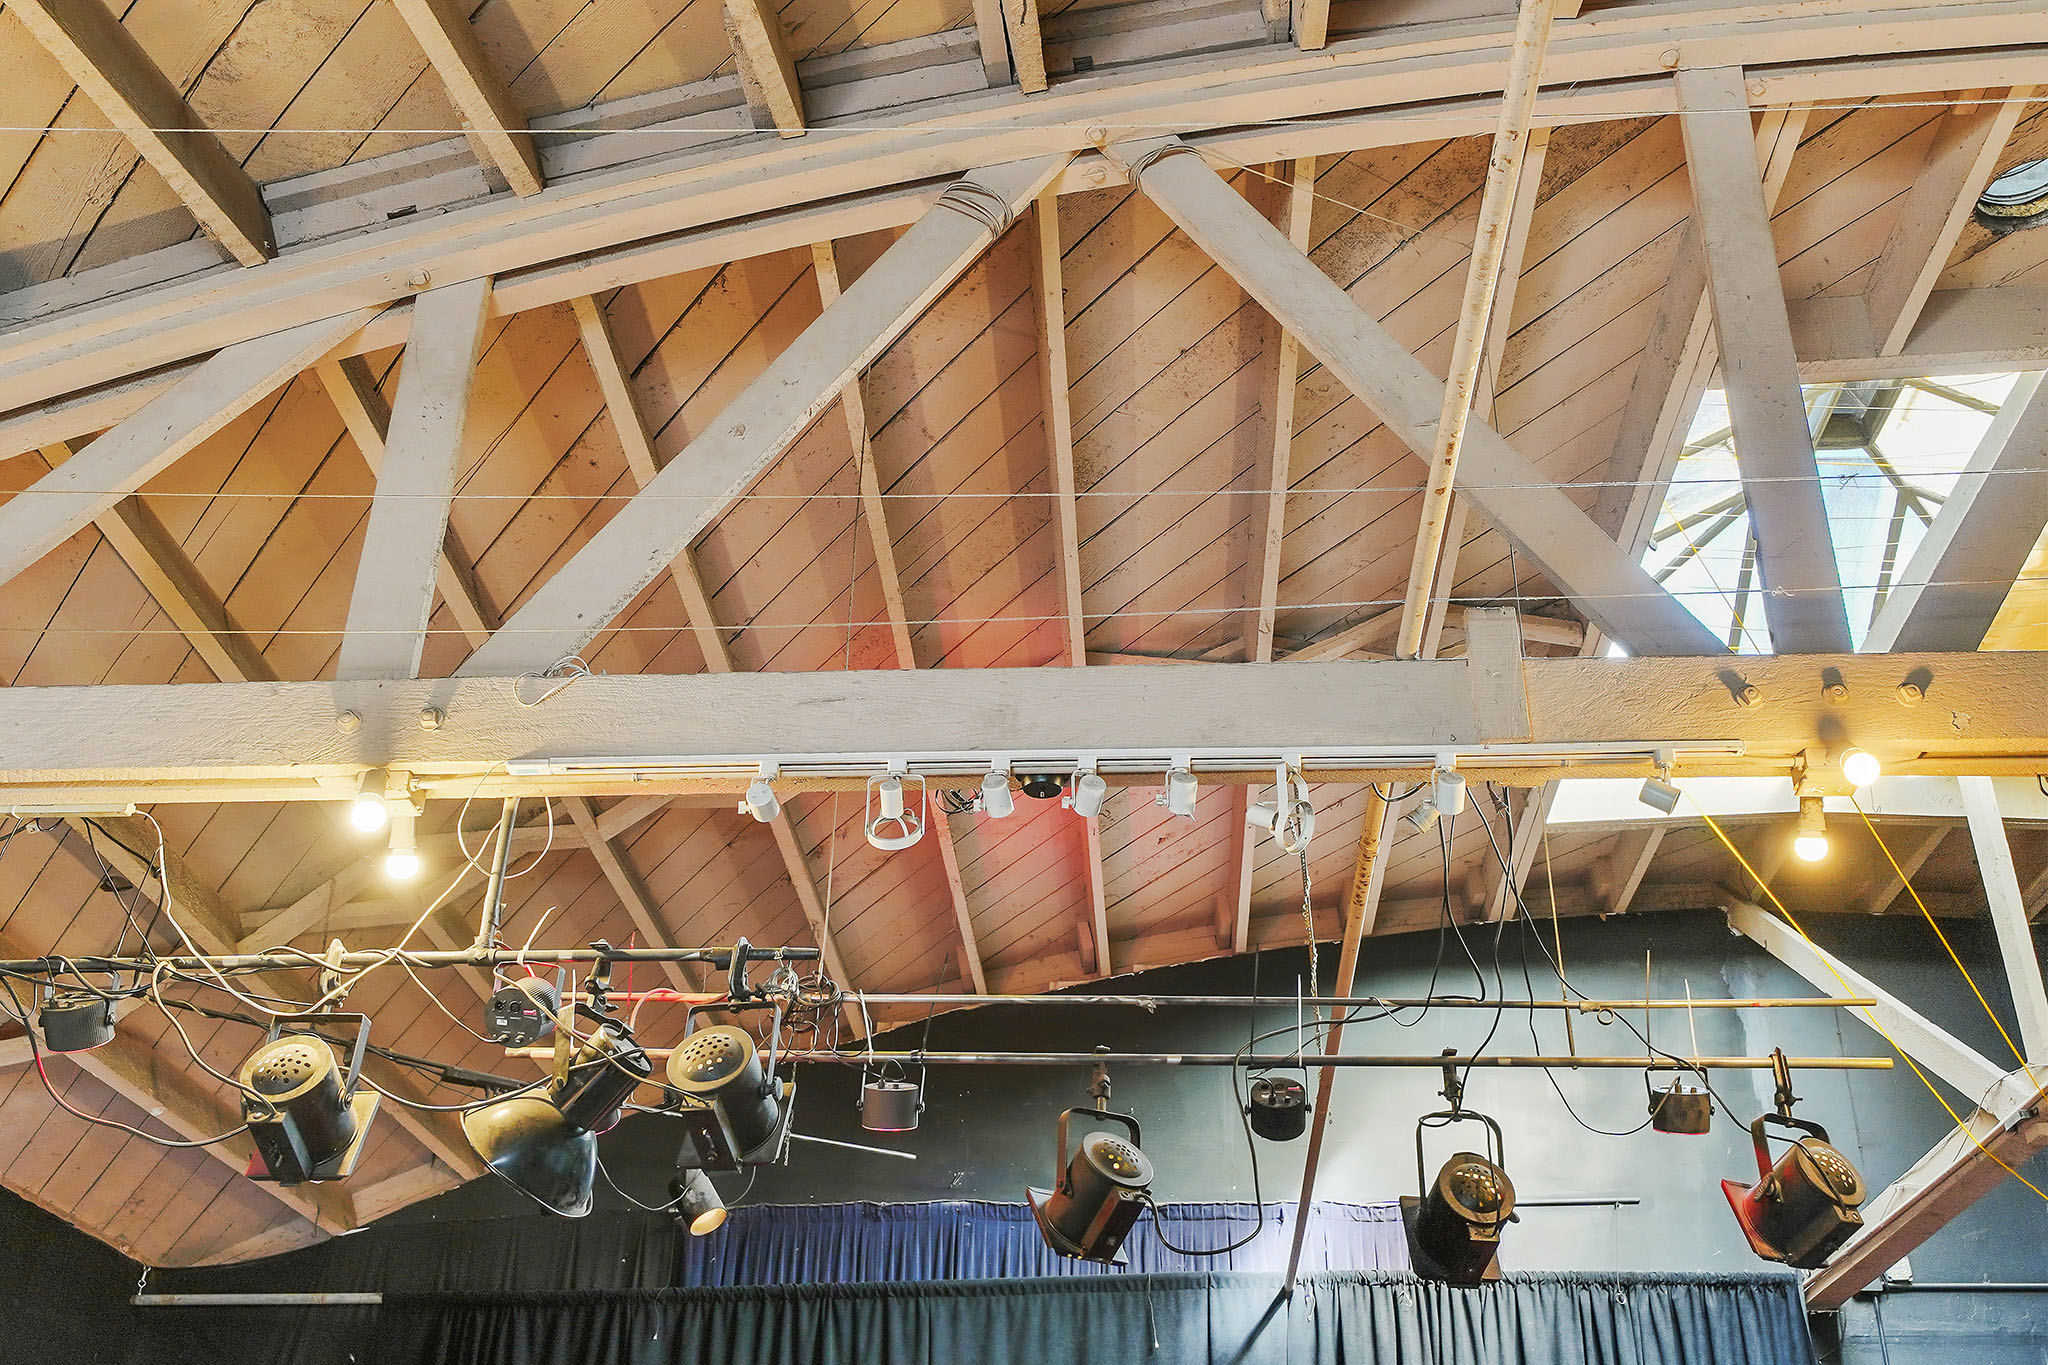 The soaring wood frame bowed truss ceiling.